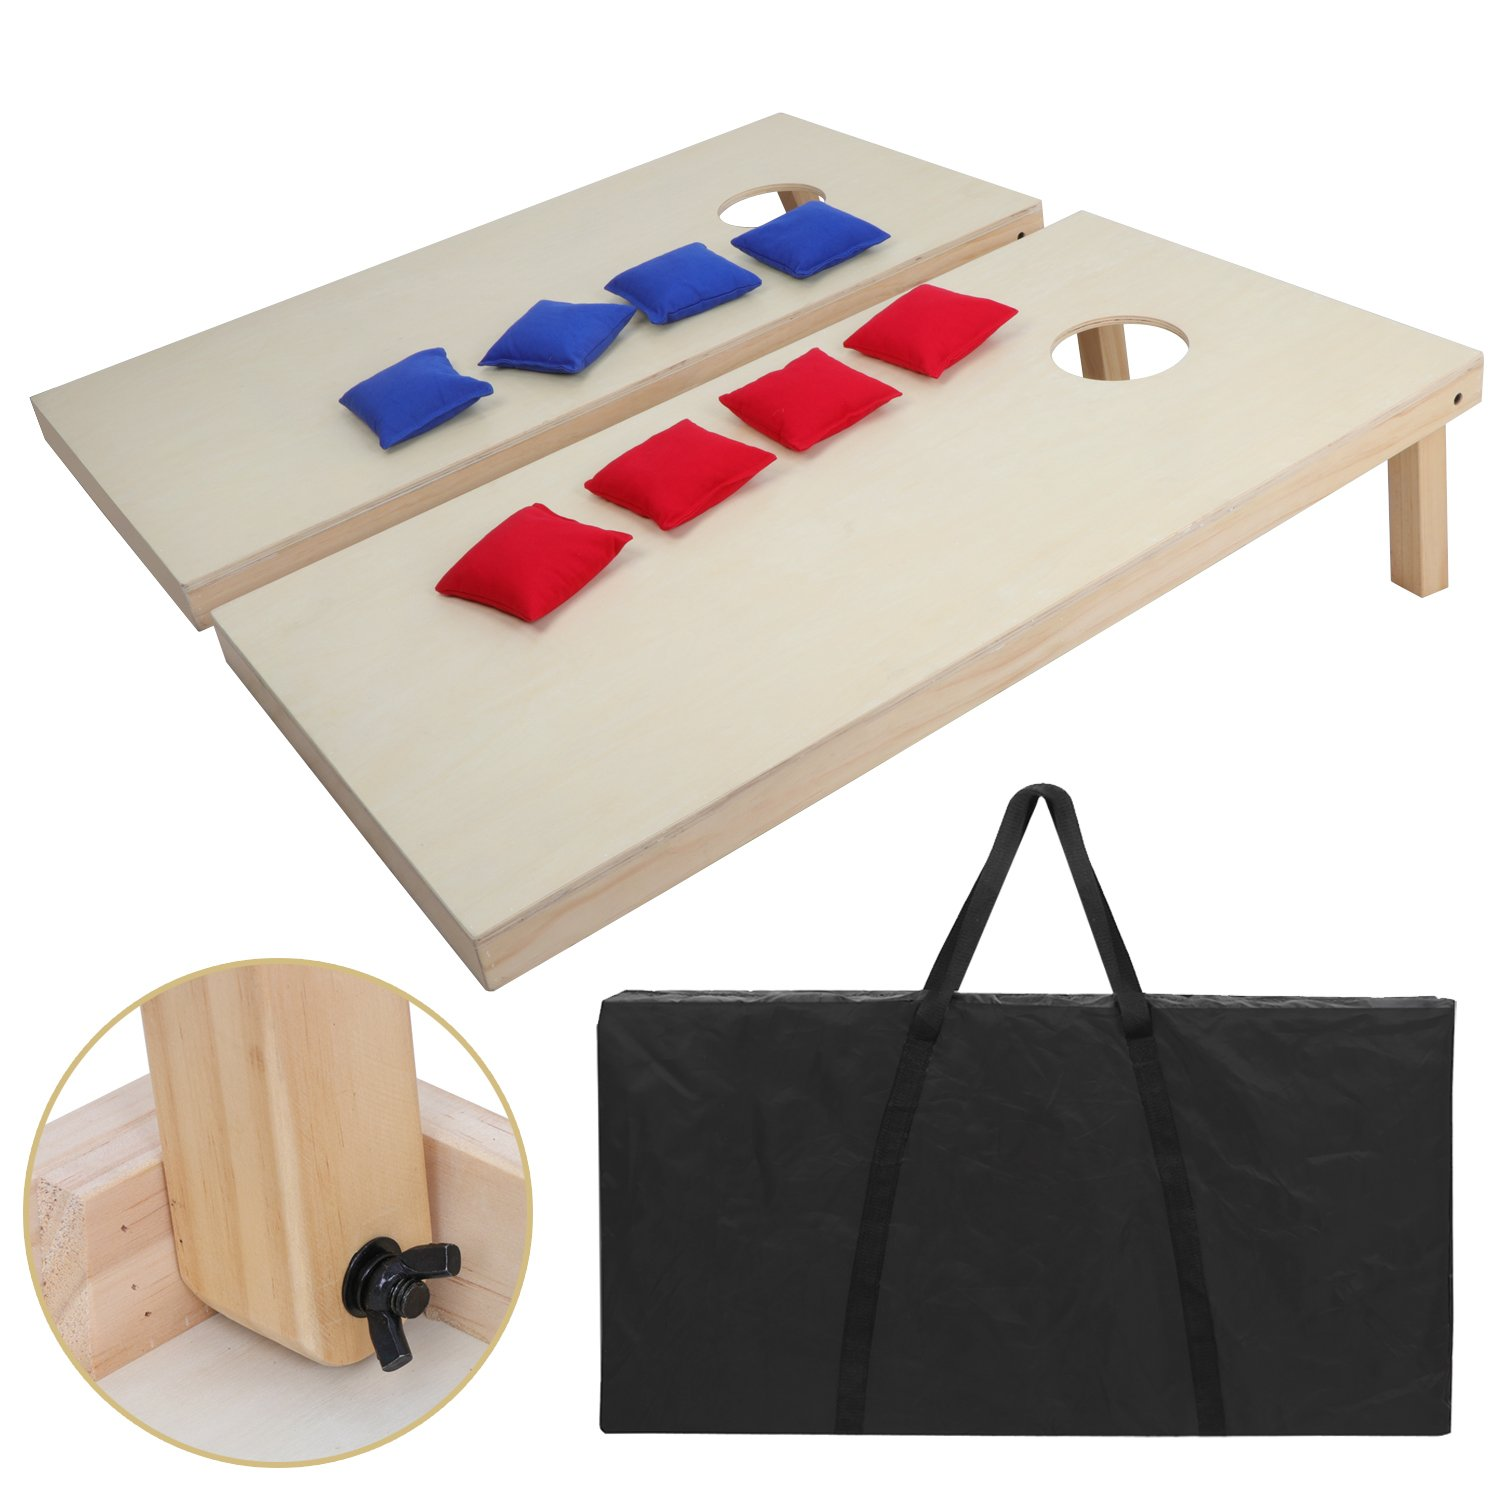 3ft X 2 ft Cornhole Bean Bag Toss Game Set Solid Wood Portable Design W/Carrying Case for Tailgate Party Backyard BBQ by Nova Microdermabrasion